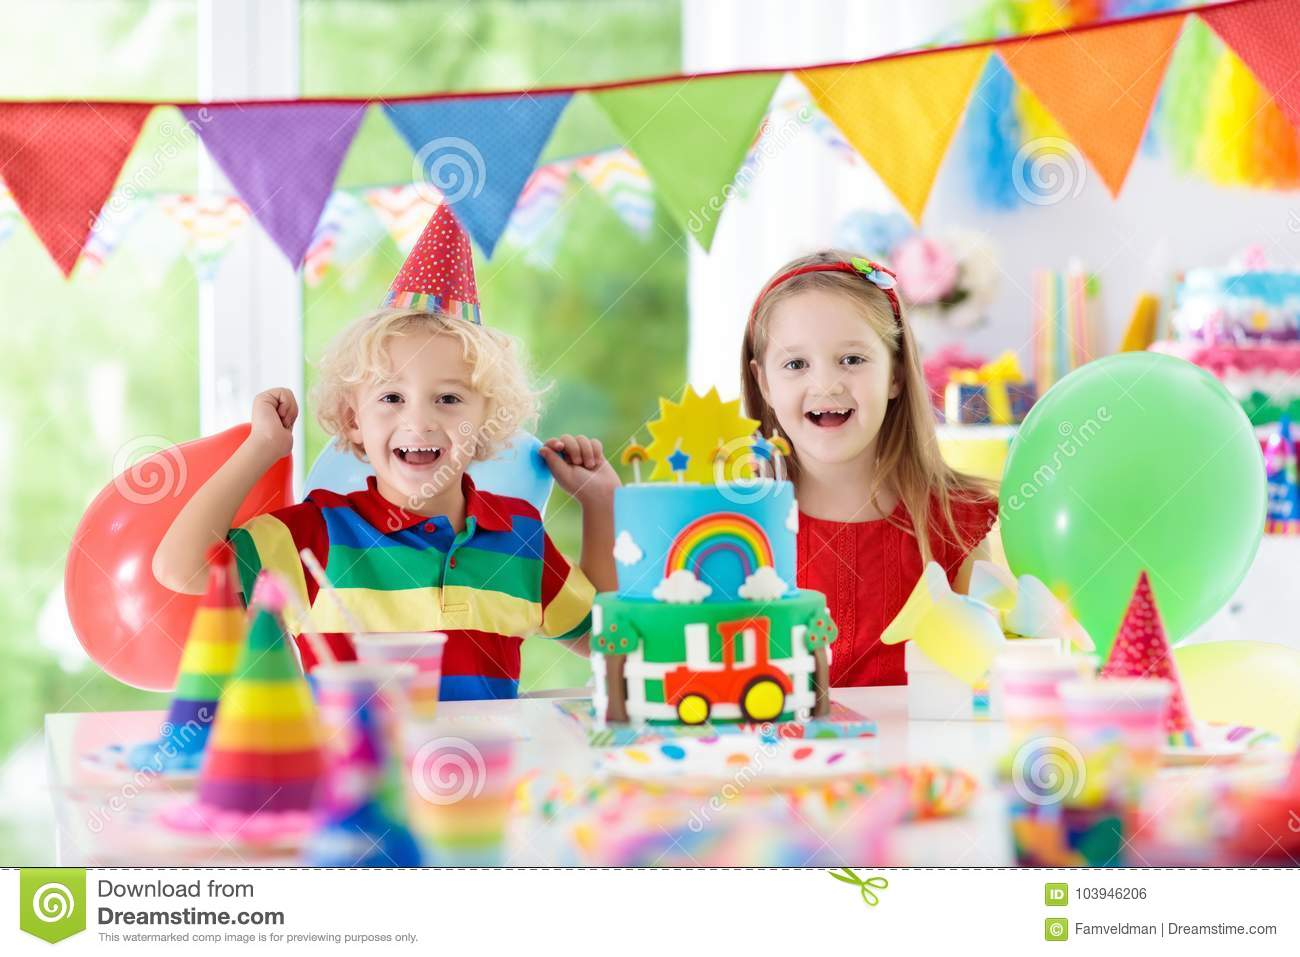 Kids Birthday Party Child Blowing Out Candles On Colorful Cake Decorated Home With Rainbow Flag Banners Balloons Confetti Farm And Transport Theme